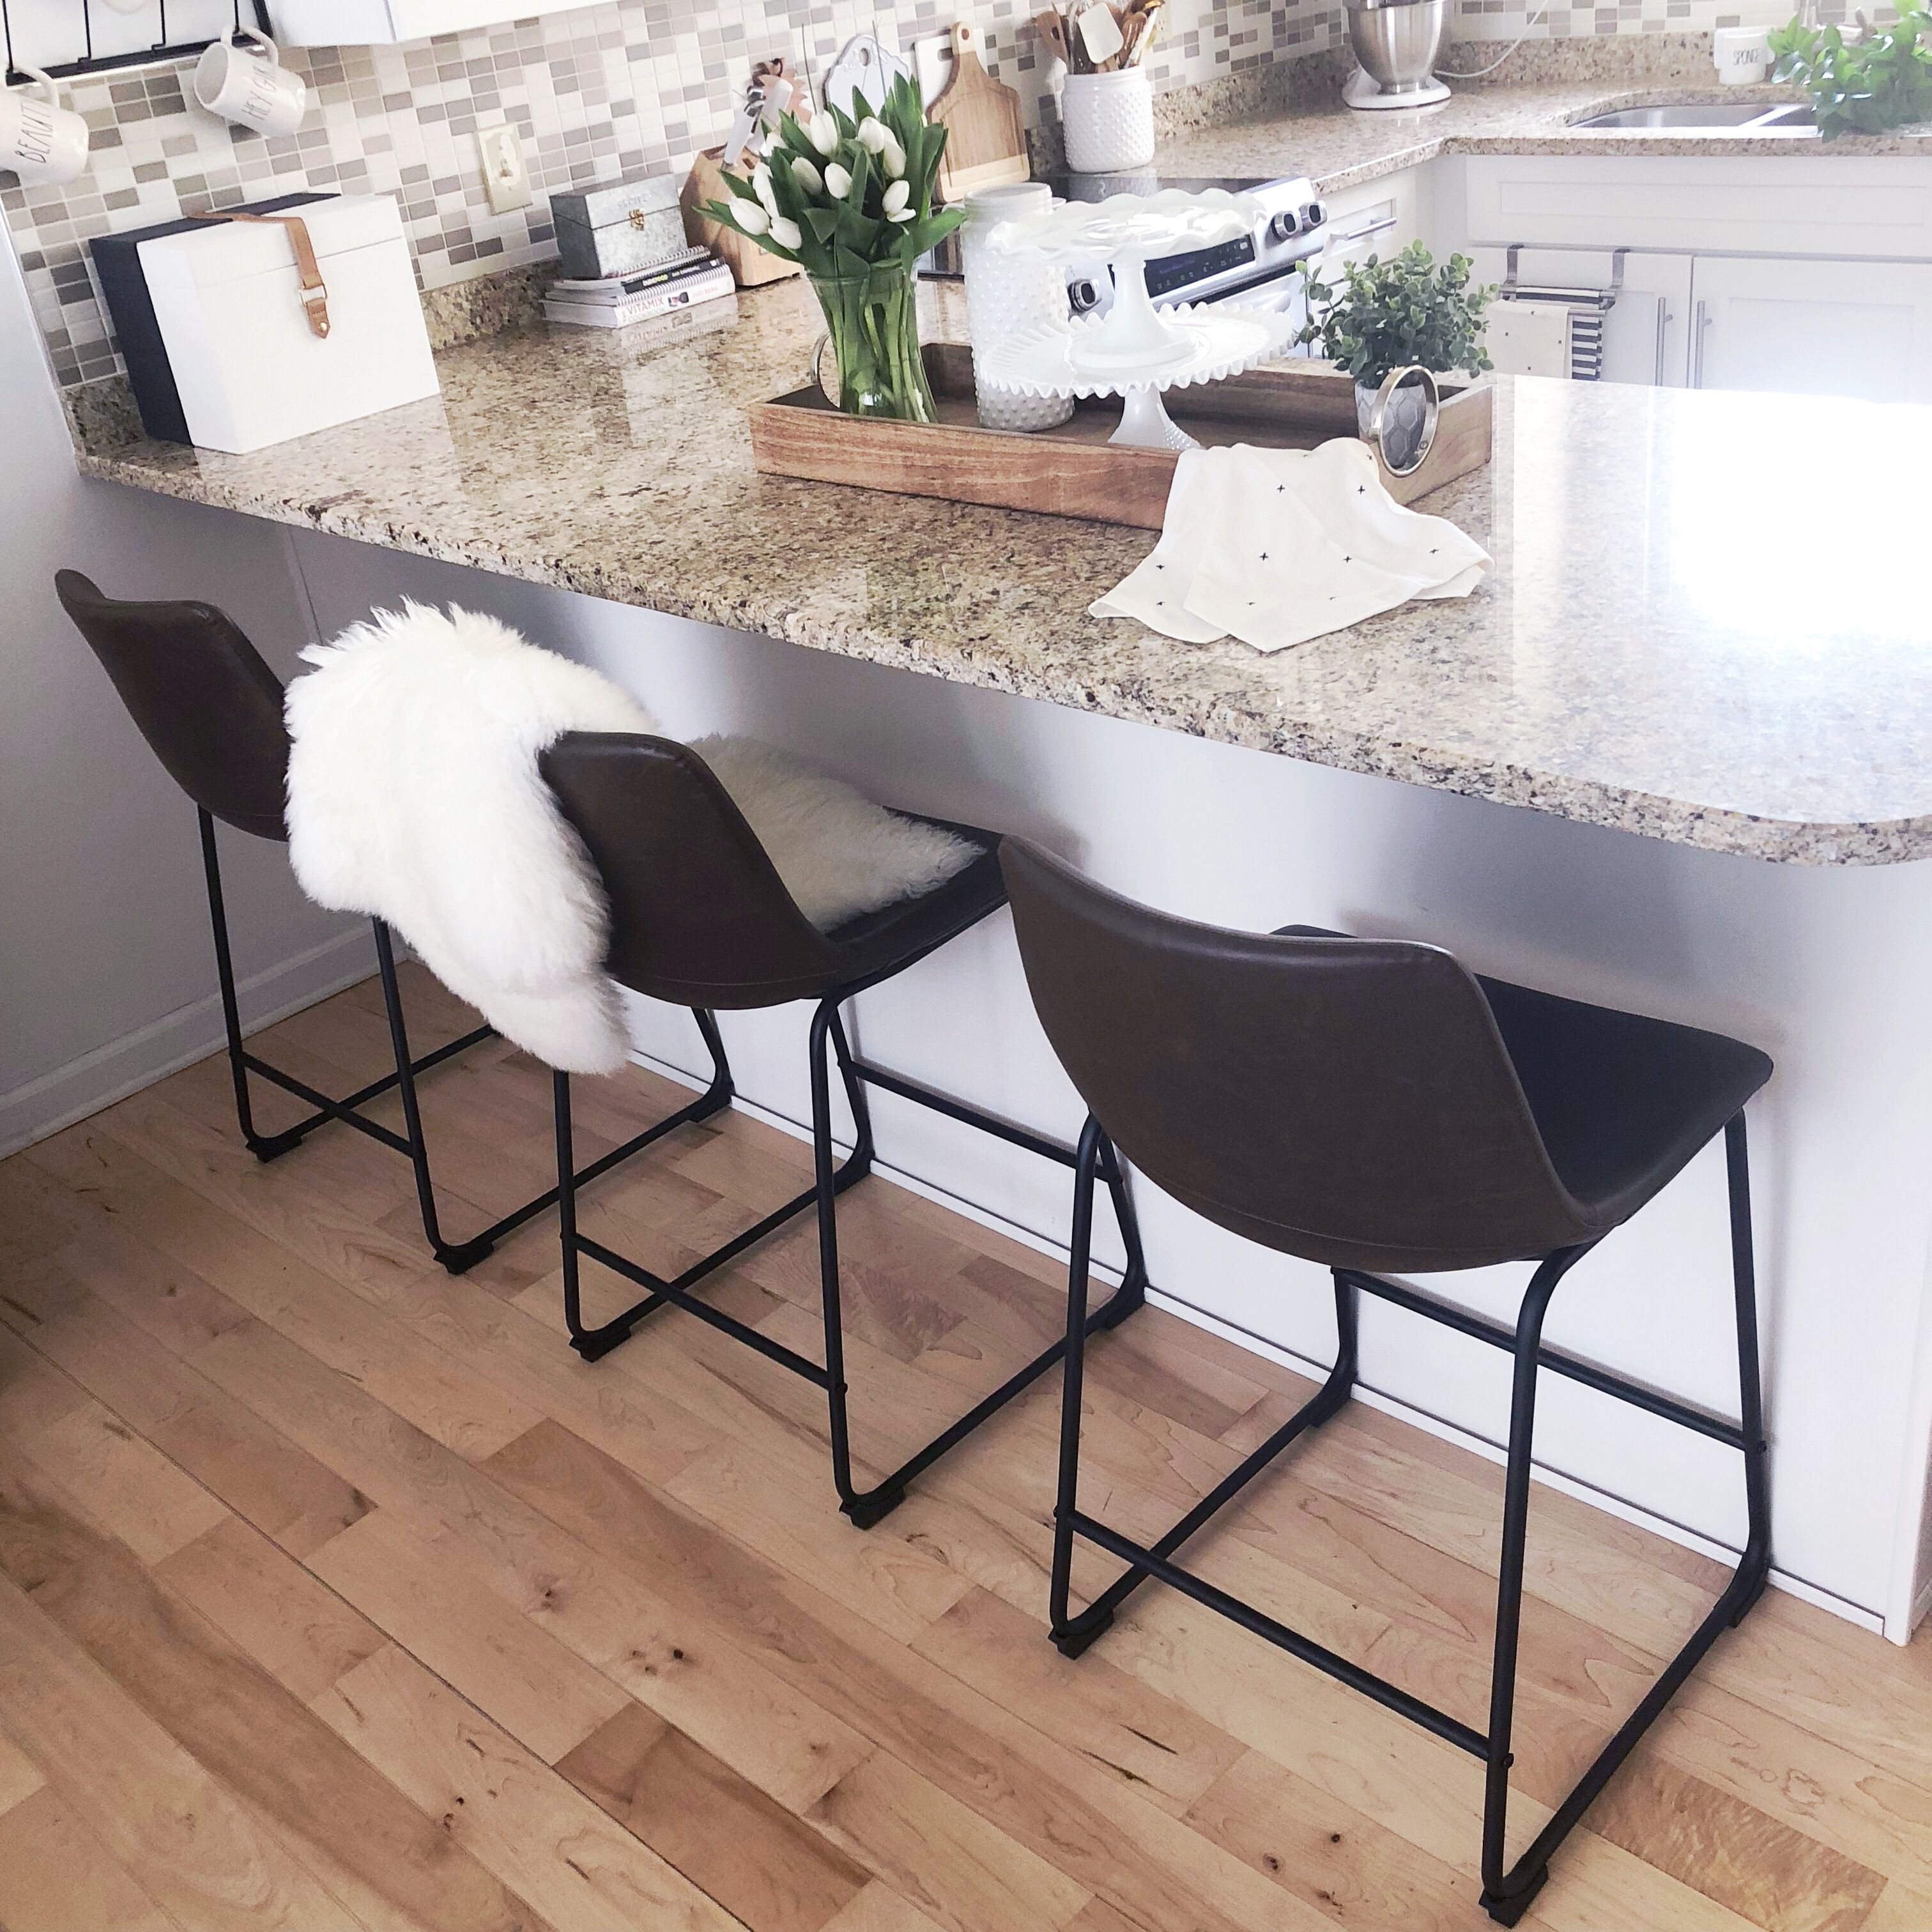 Brown And Black Faux Leather Target Counter Stools With A Sheepskin Throw Grani Kitchen Interior Design Modern Modern Kitchen Interiors Interior Design Kitchen